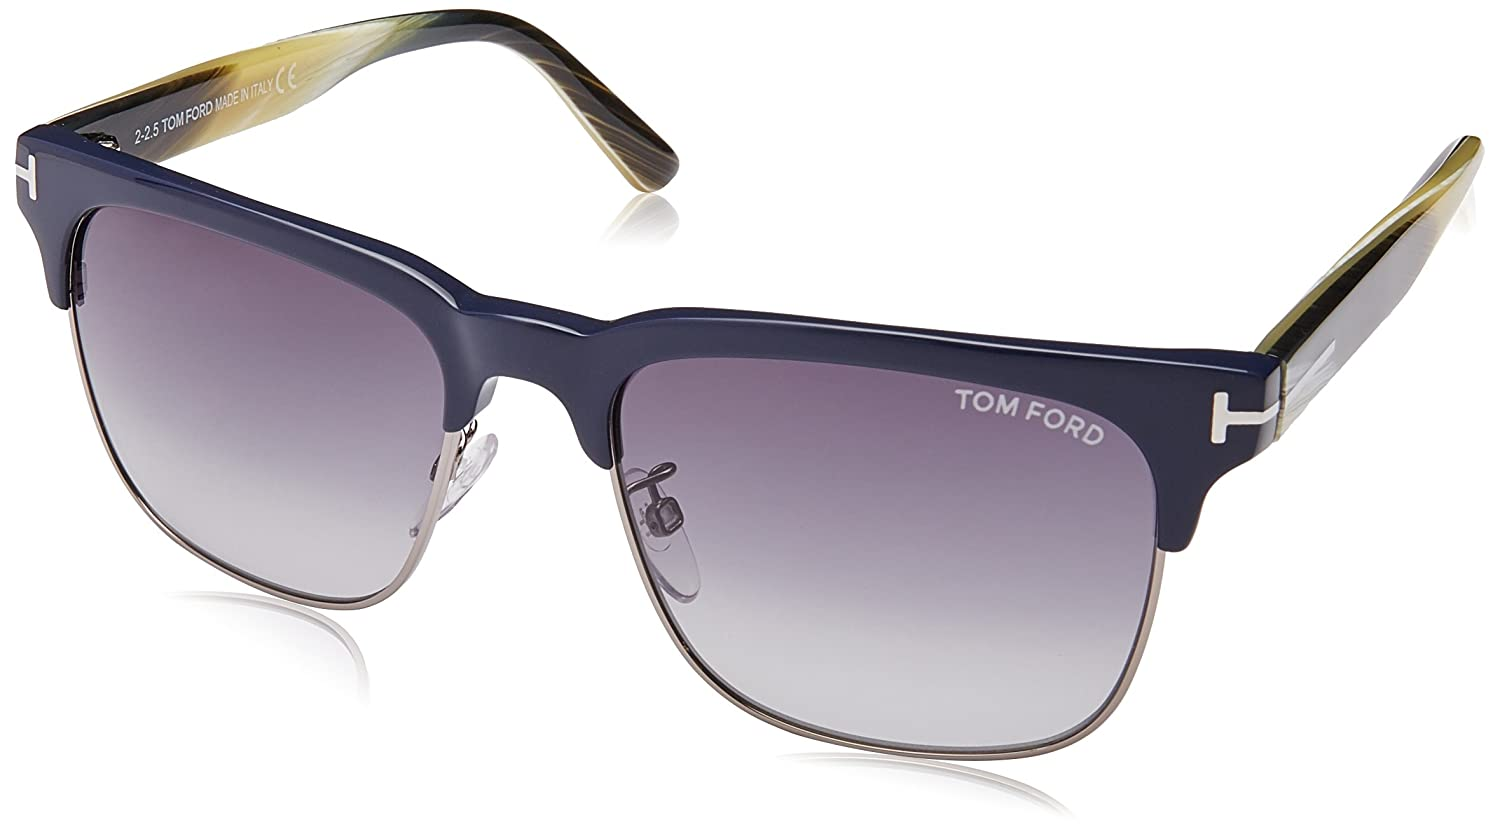 a44b369074 Tom Ford River Clubmaster Sunglasses In Matte Black   Tort Lens G ...